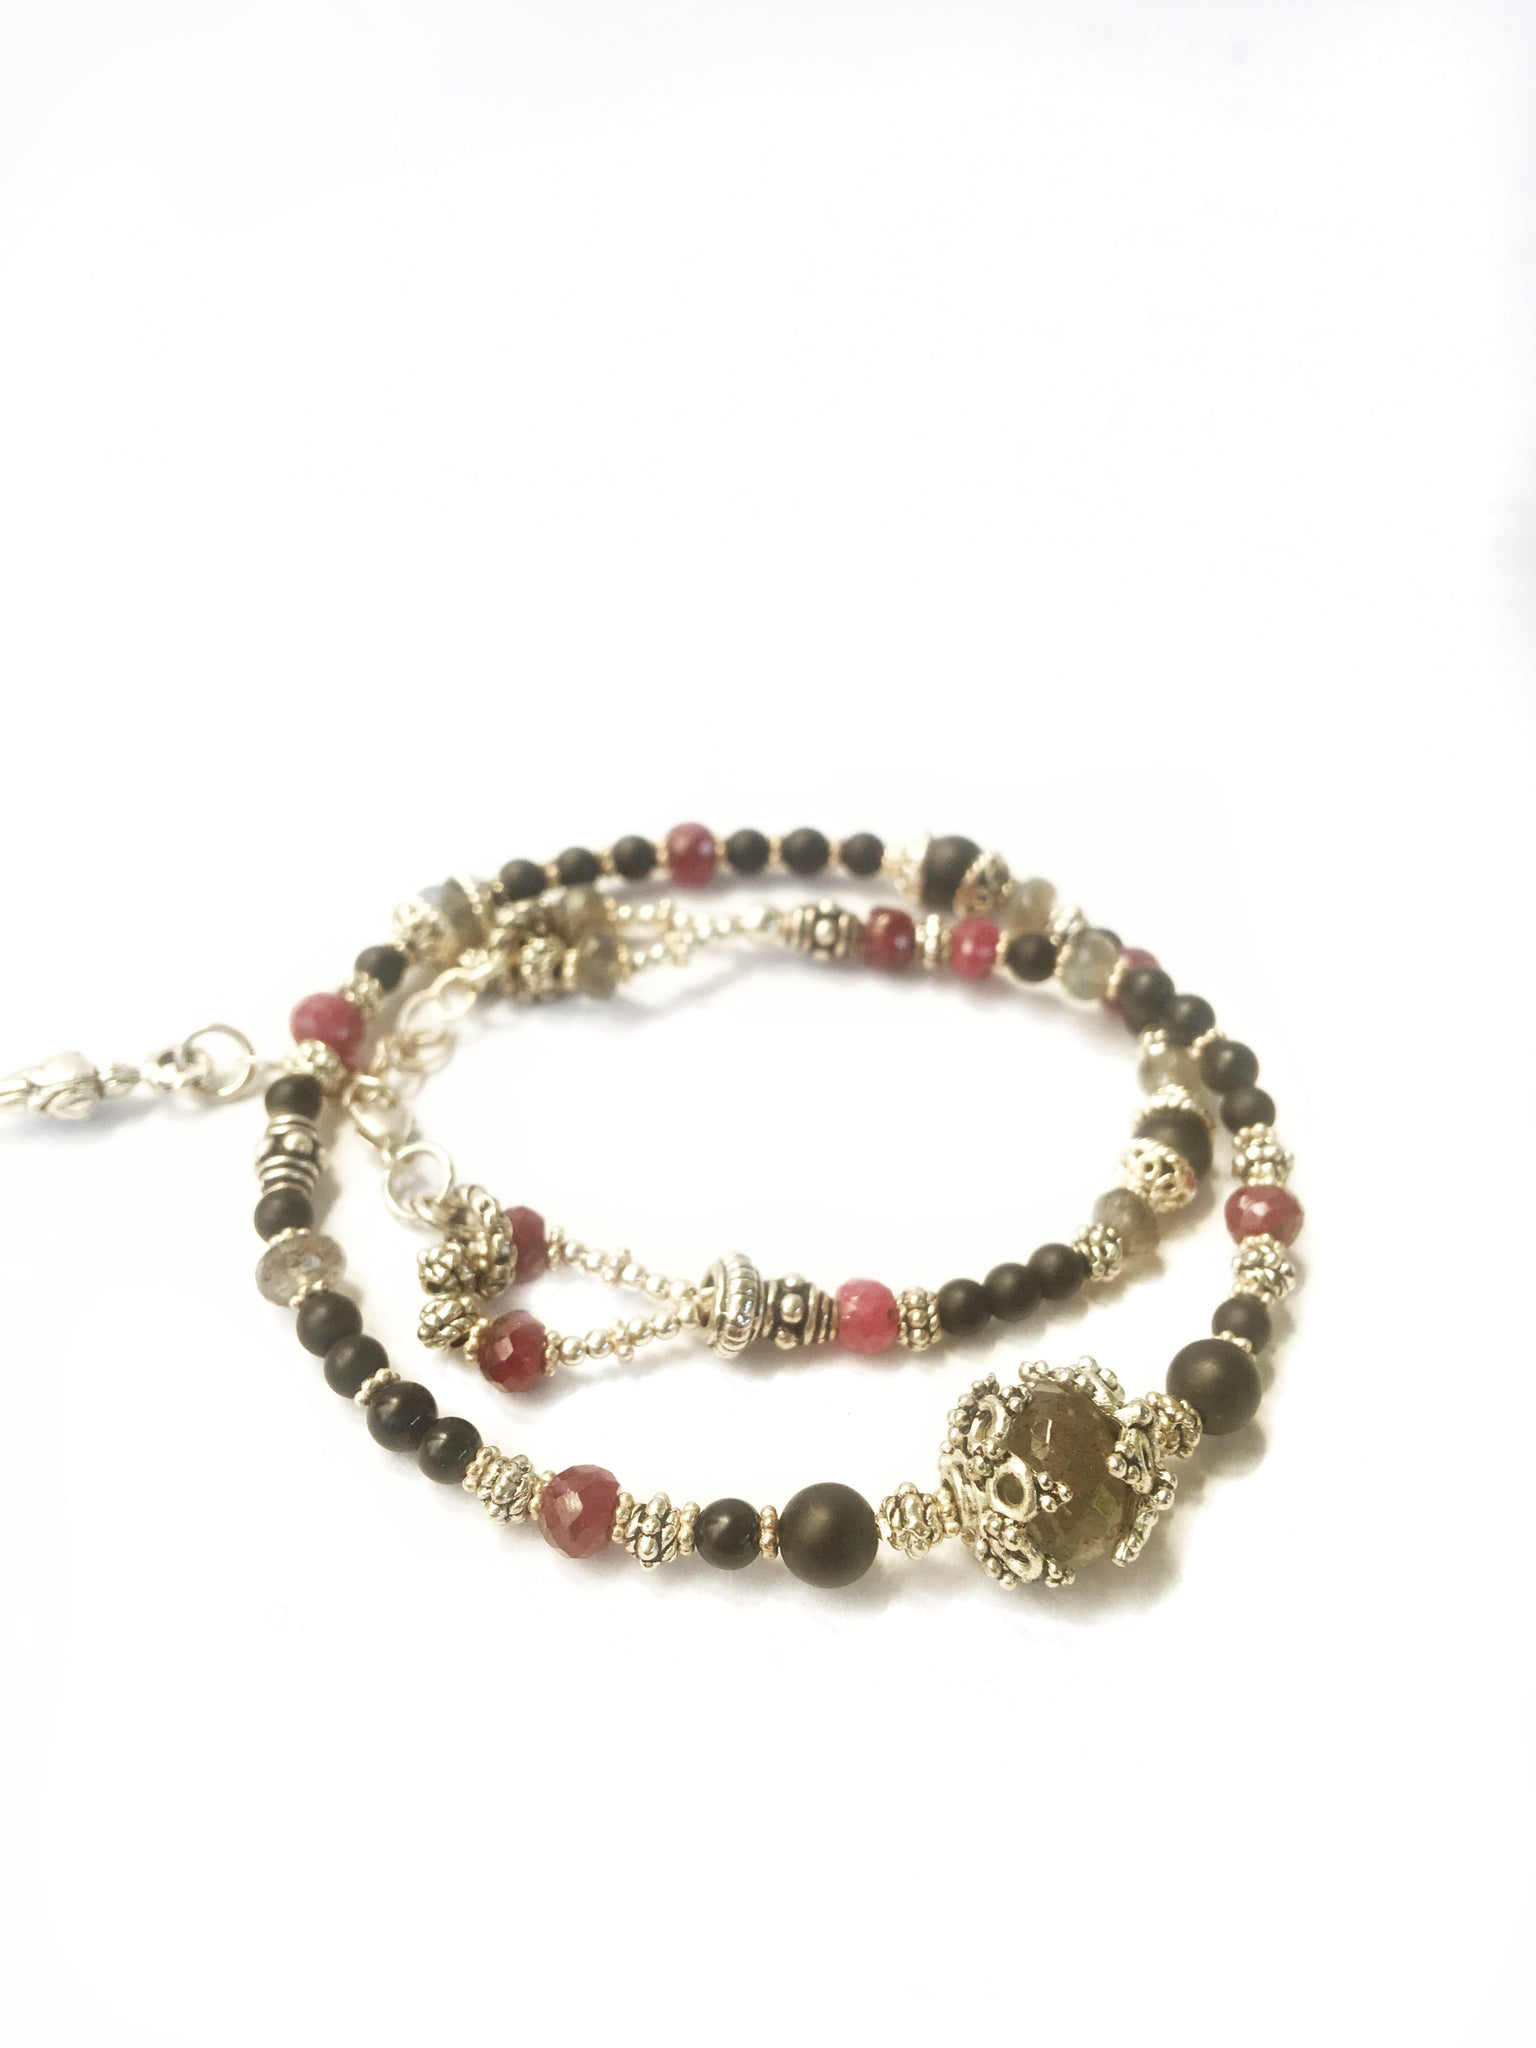 Ruby Labradorite and Onyx Wrap Bracelet